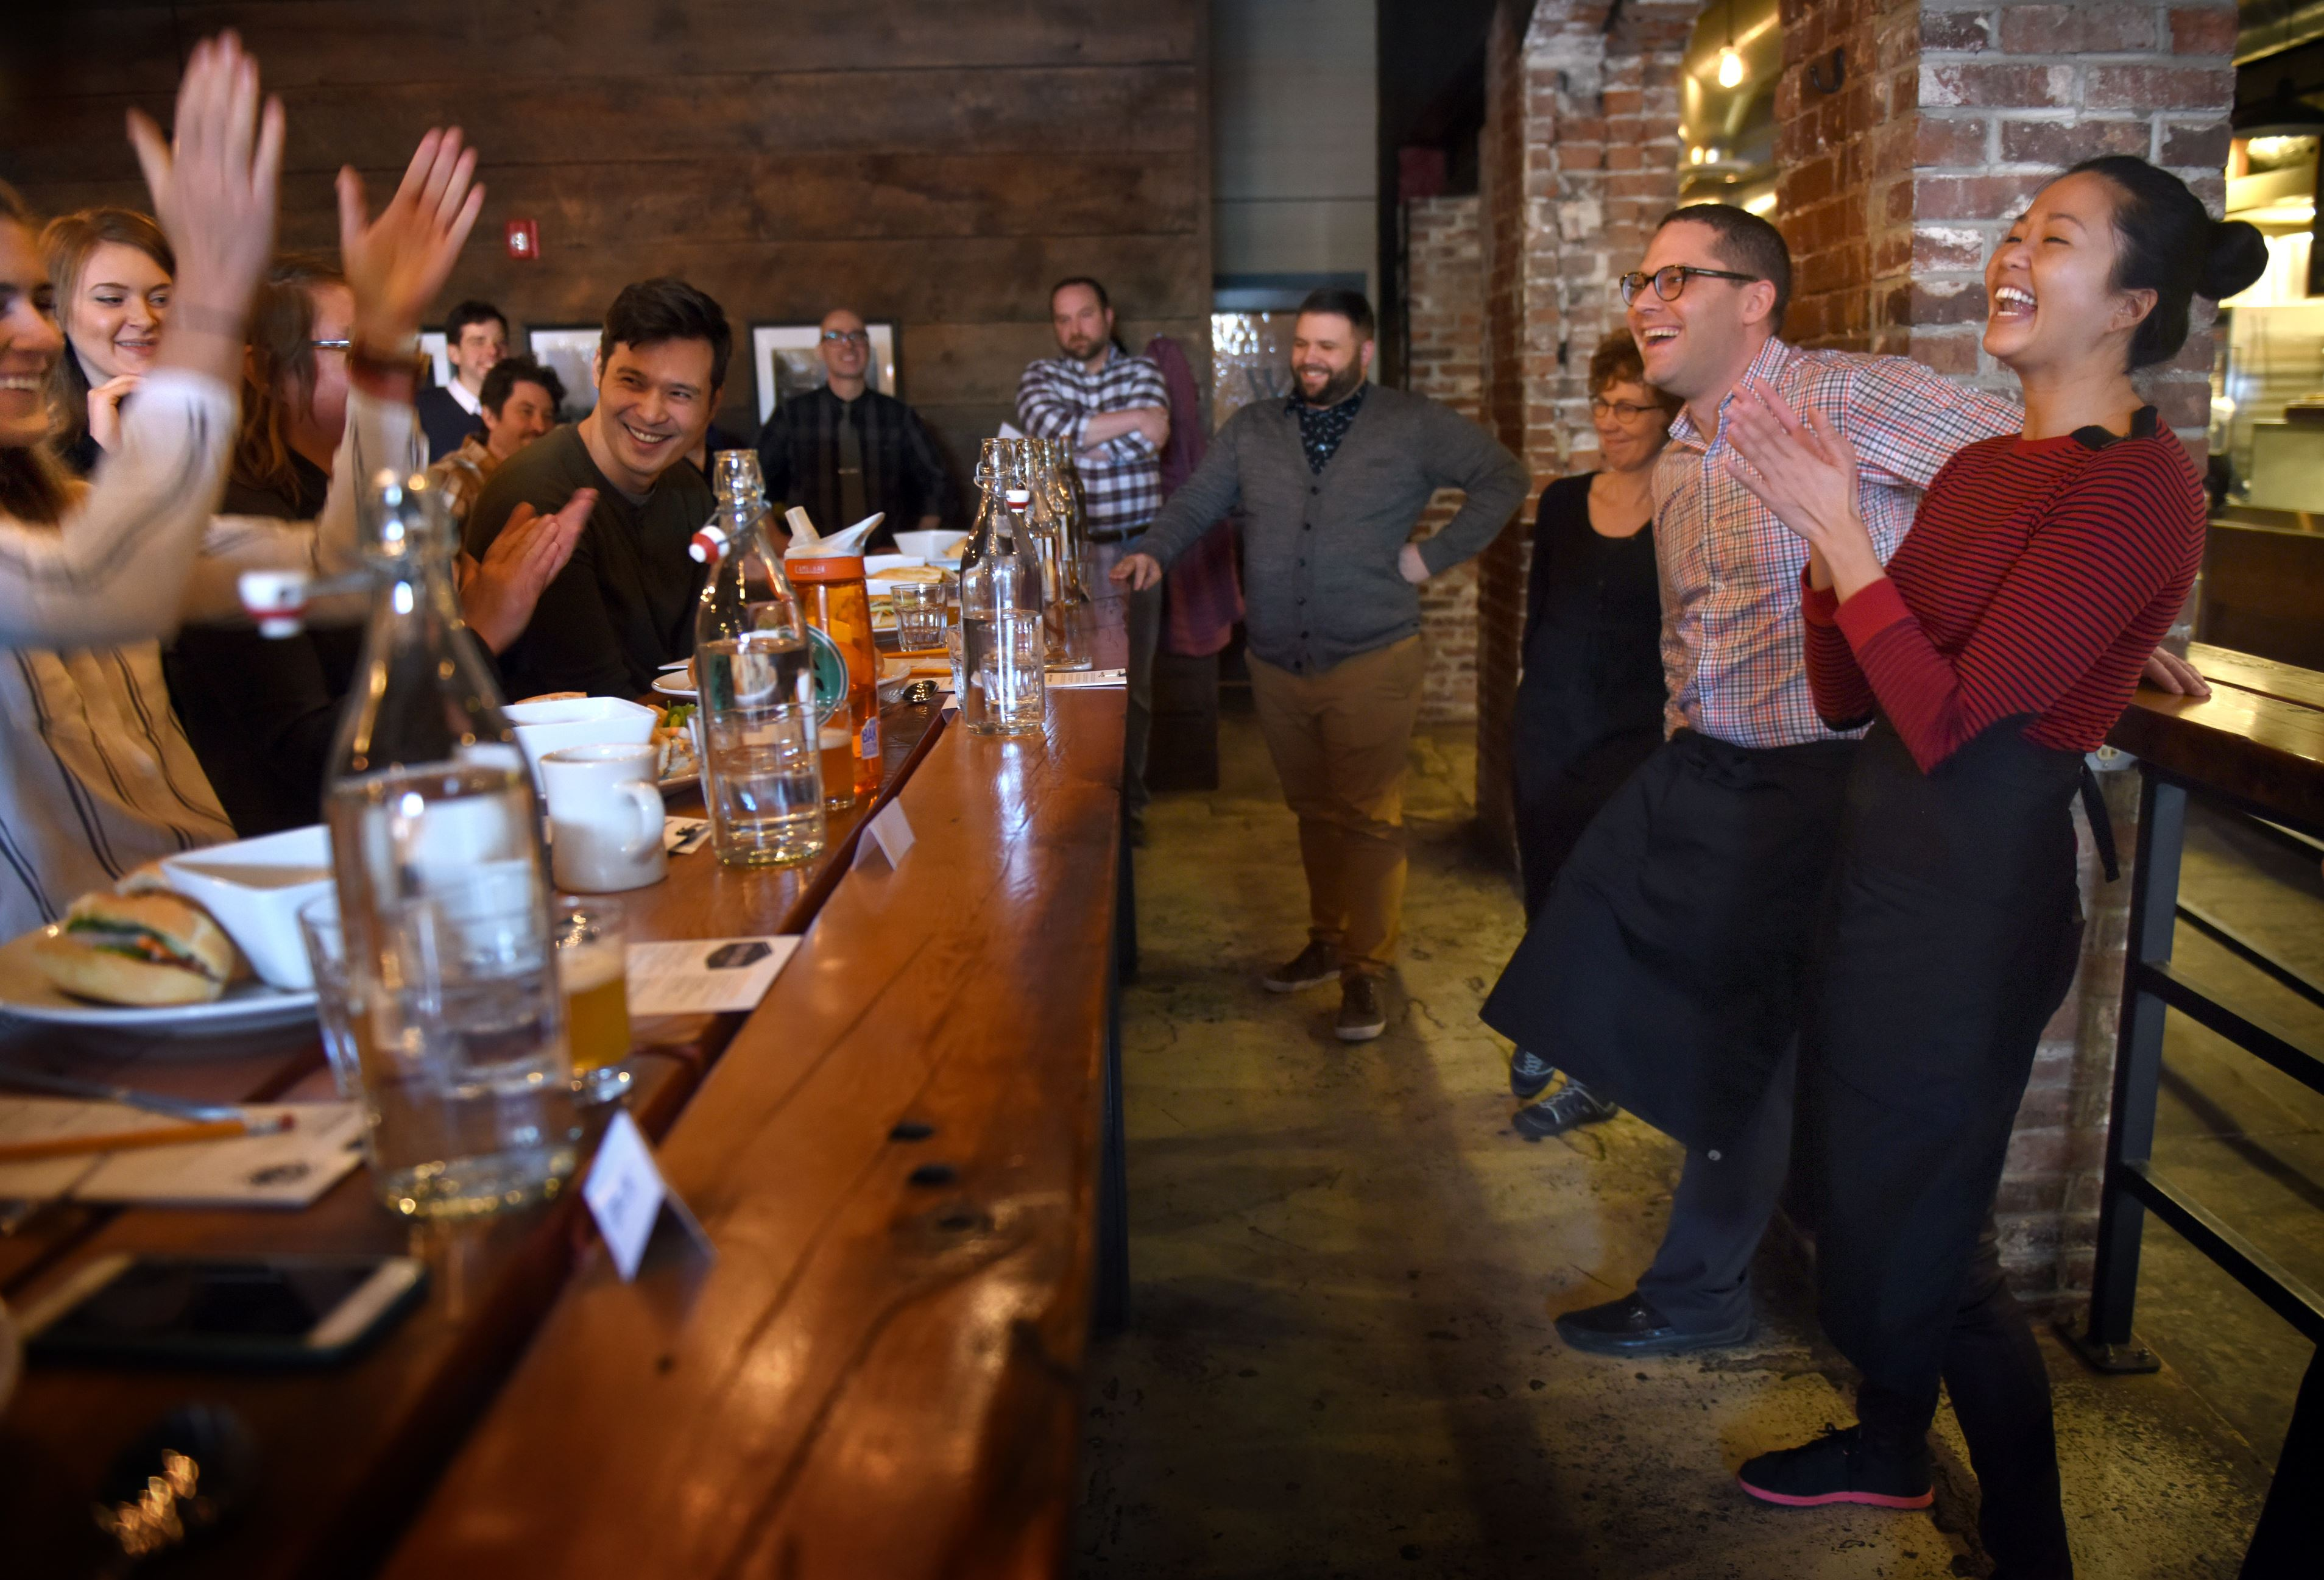 smallman galley announces its new class of chefs | pittsburgh post